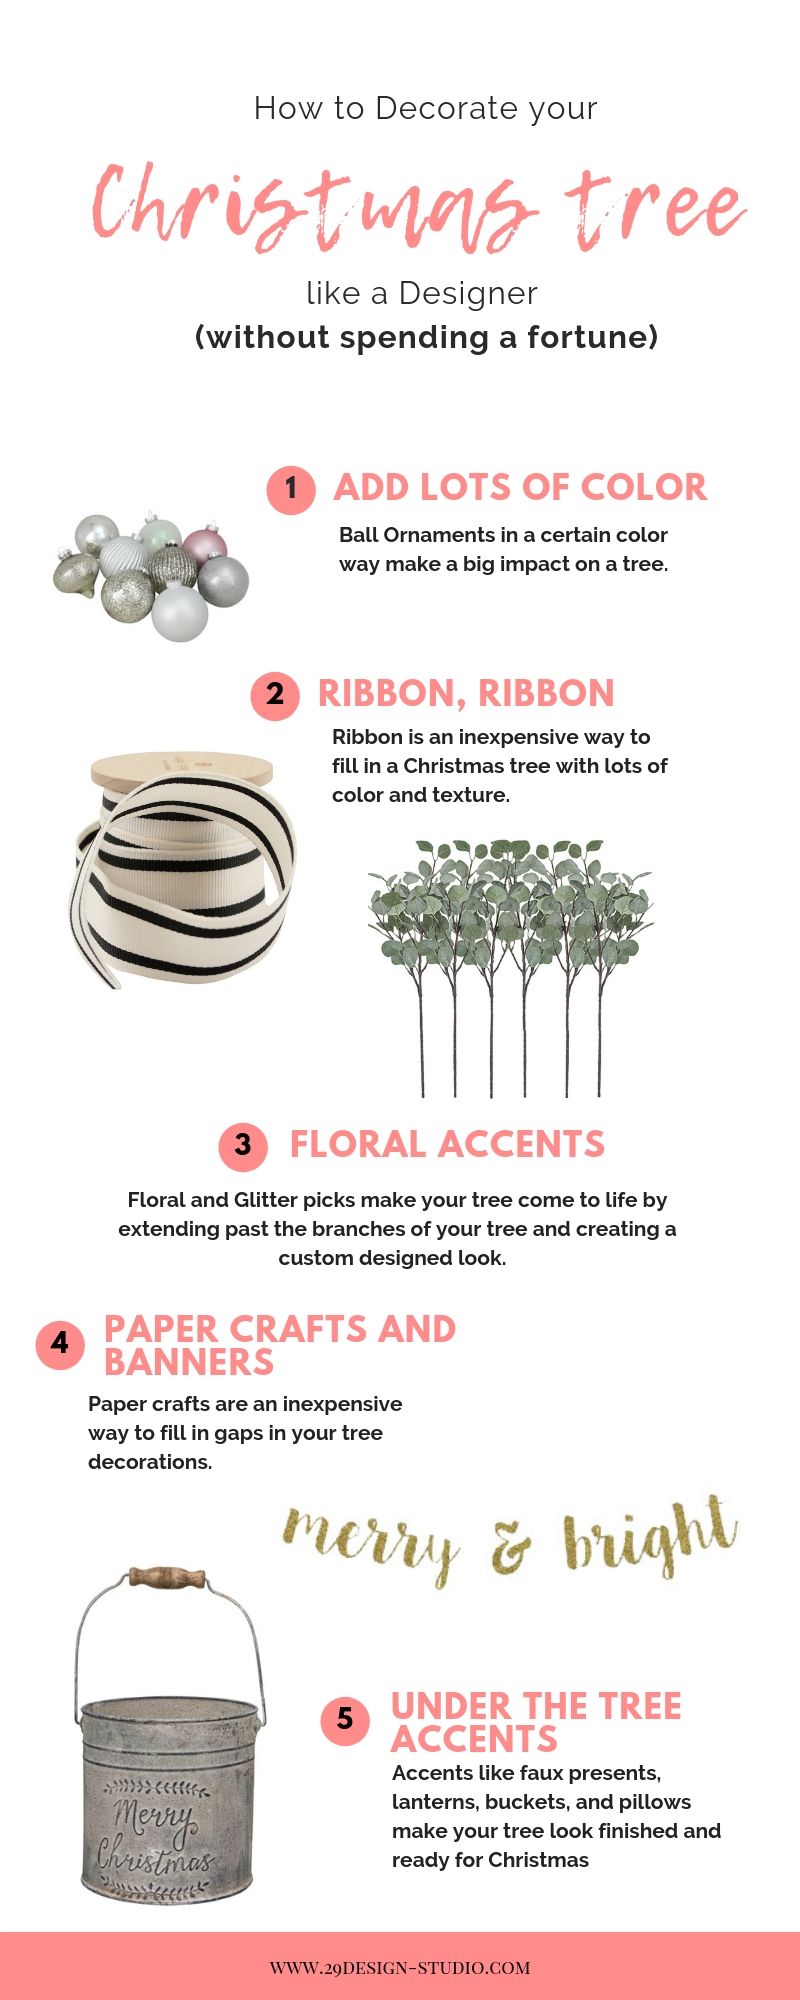 How to Decorate your Christmas tree like a Designer: Easy tips for changing your Christmas Decor on a budget